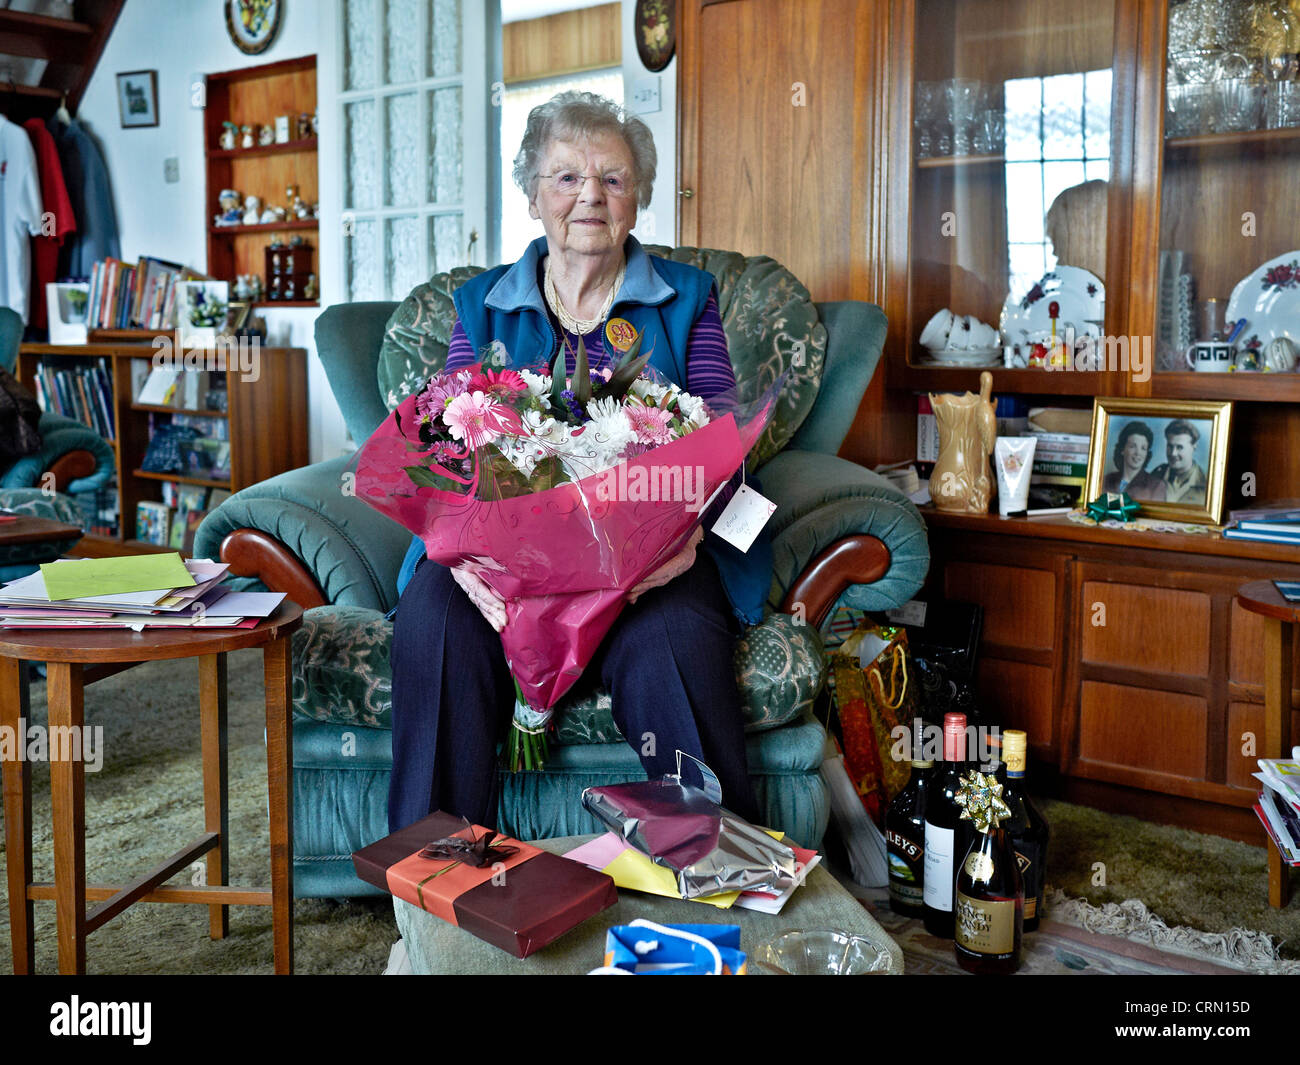 90 Year Old Senior At Home On Her Birthday Surrounded With Presents England UK Europe